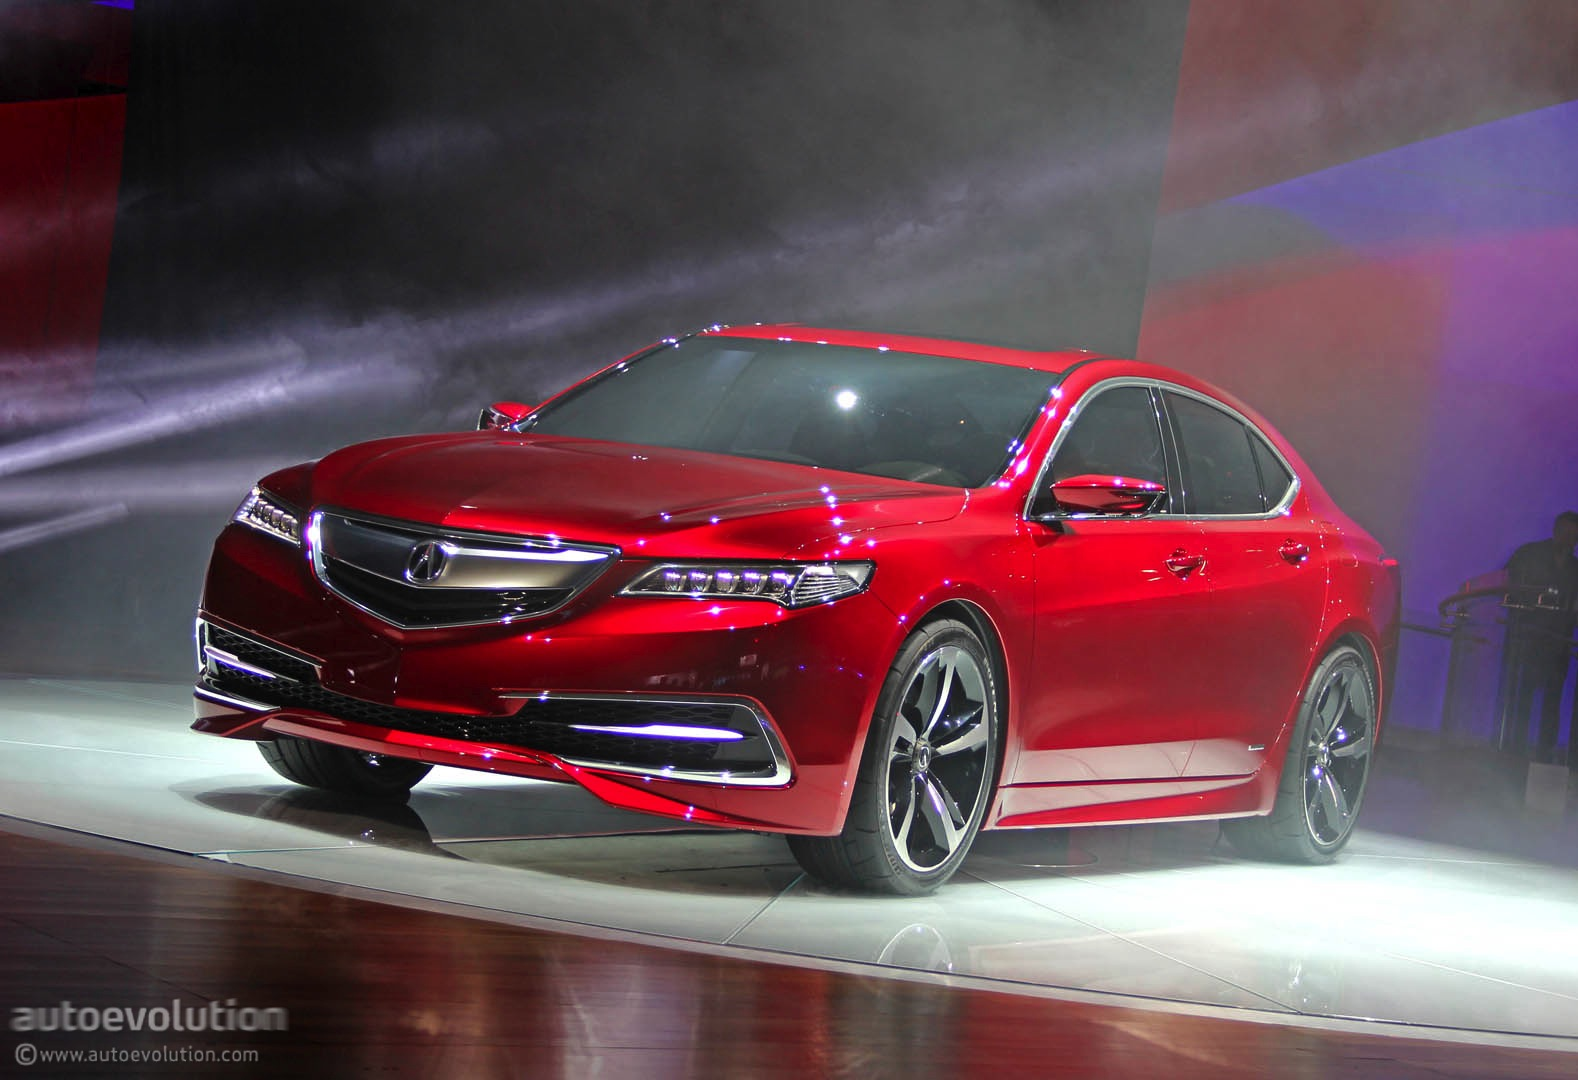 2015 Acura Tlx Tech >> 2015 Acura TLX Prototype Unveiled at 2014 Detroit Show ...